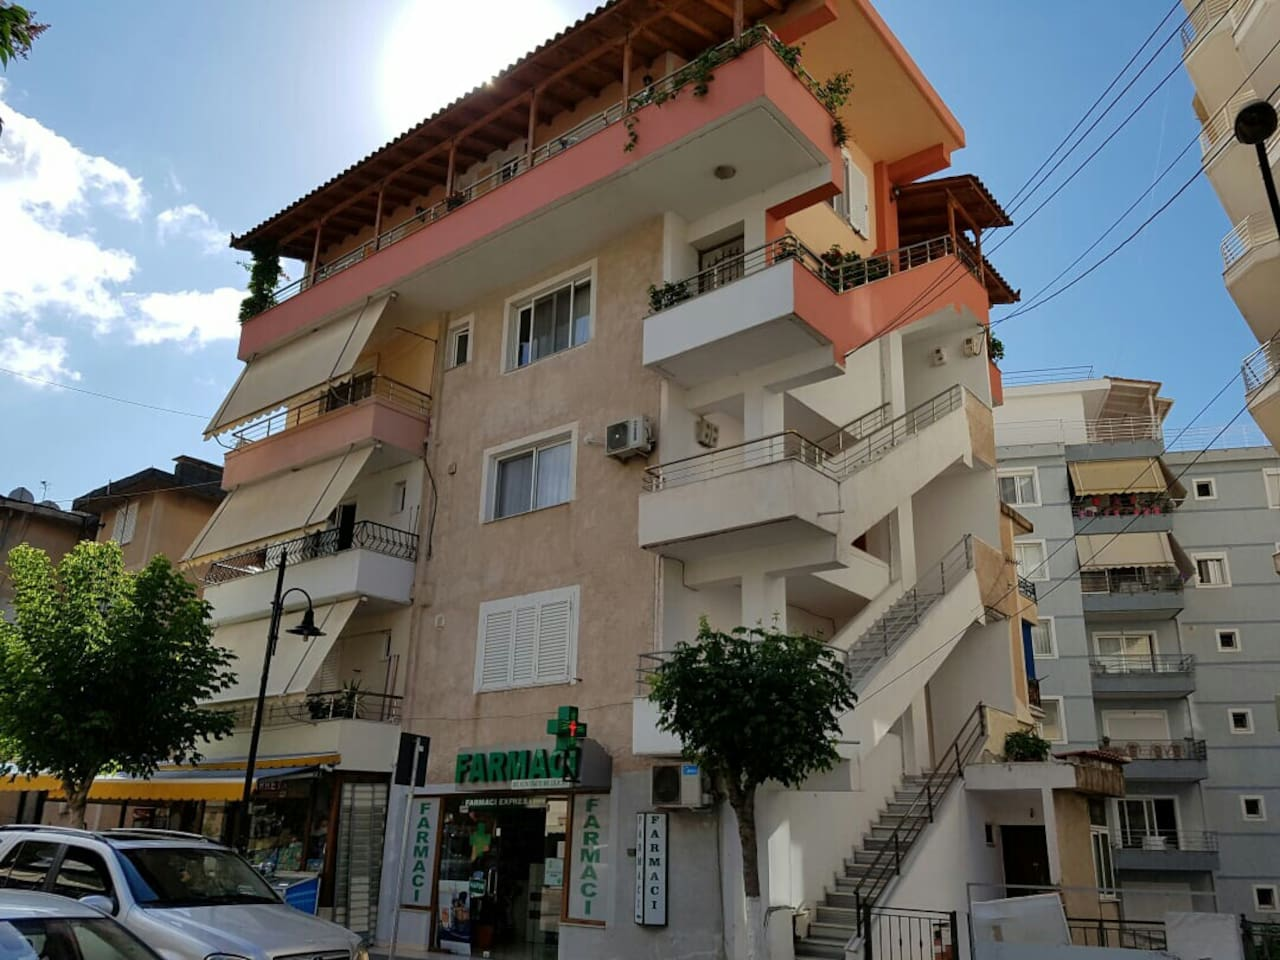 This is the entrance to the apartment. The apartment is on the third floor where the air conditioner is in the picture. Please note that in Albania we count from the ground floor. So the ground floor is the same as the first floor.